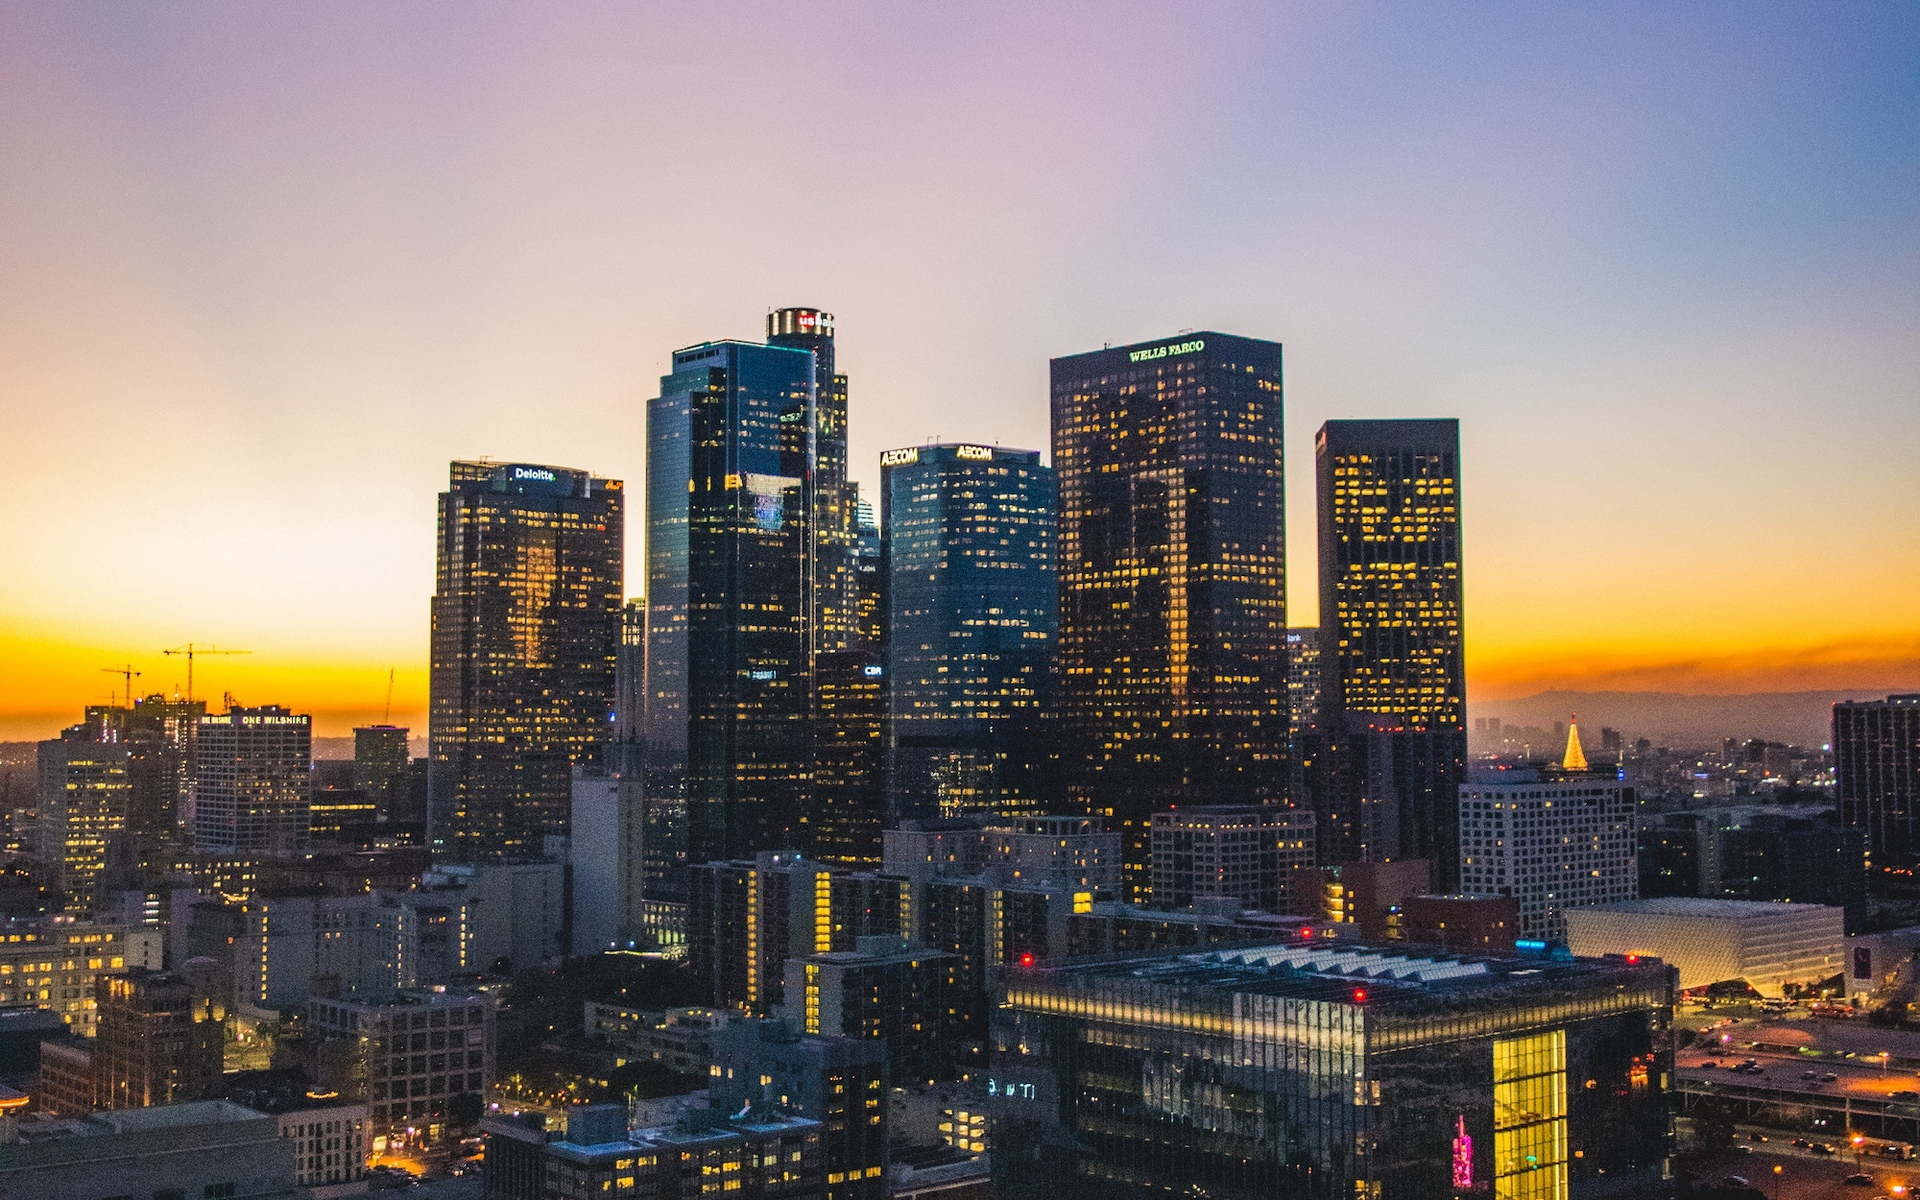 Download wallpaper 1920x1200 los angeles usa skyscrapers sunset 1920x1200